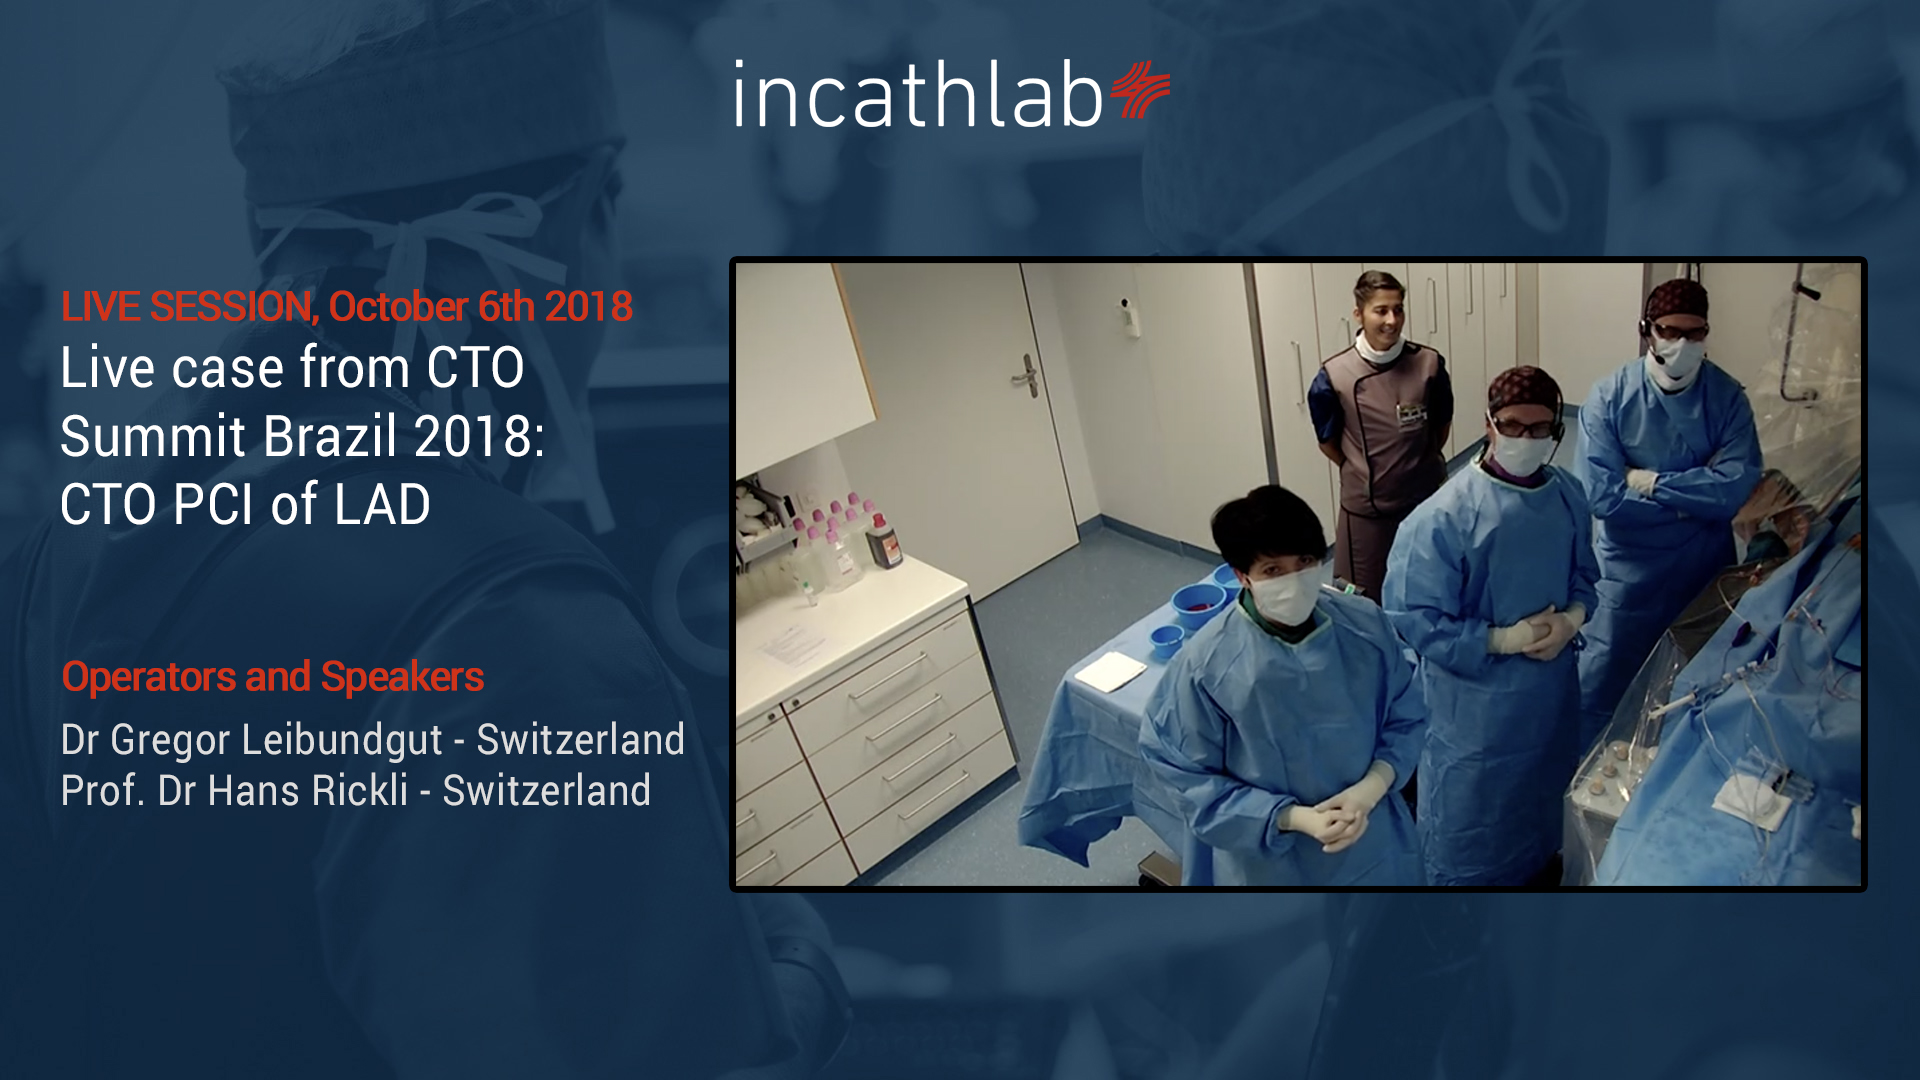 Live case from CTO Summit Brazil 2018: CTO PCI of LAD